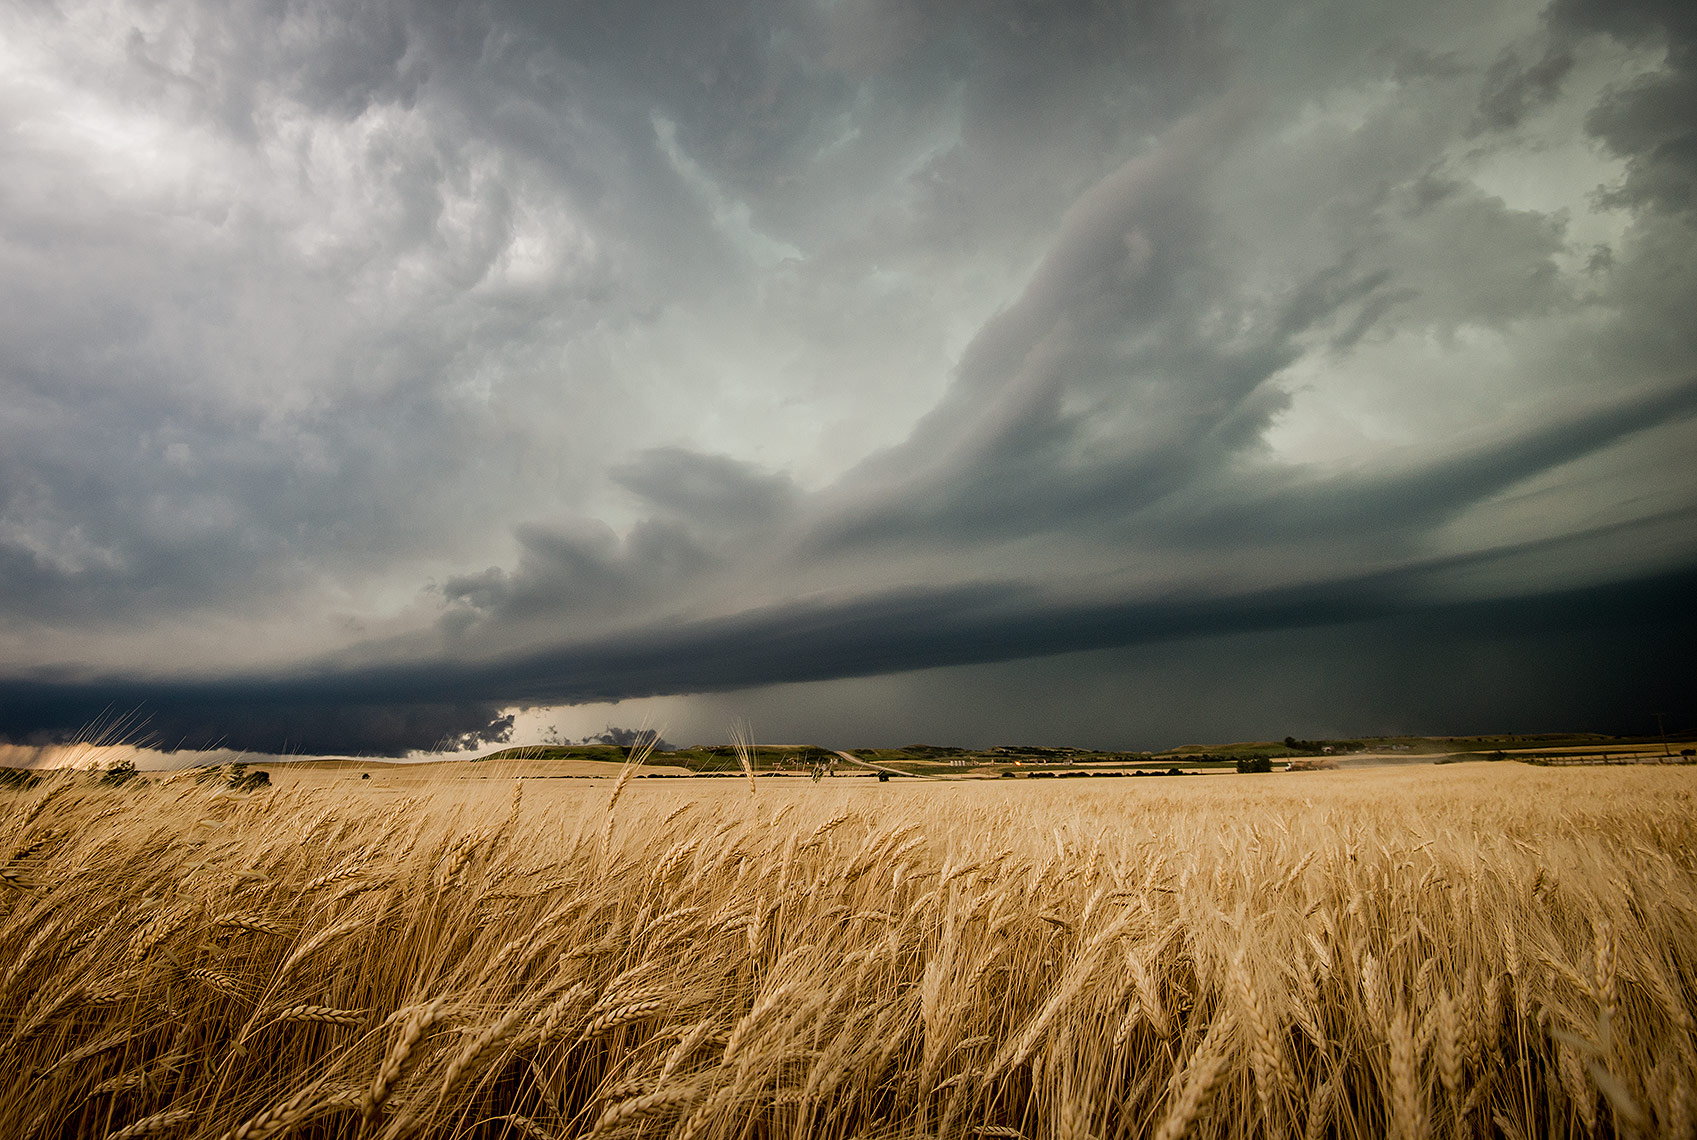 Thunderstorm and Wheat Field